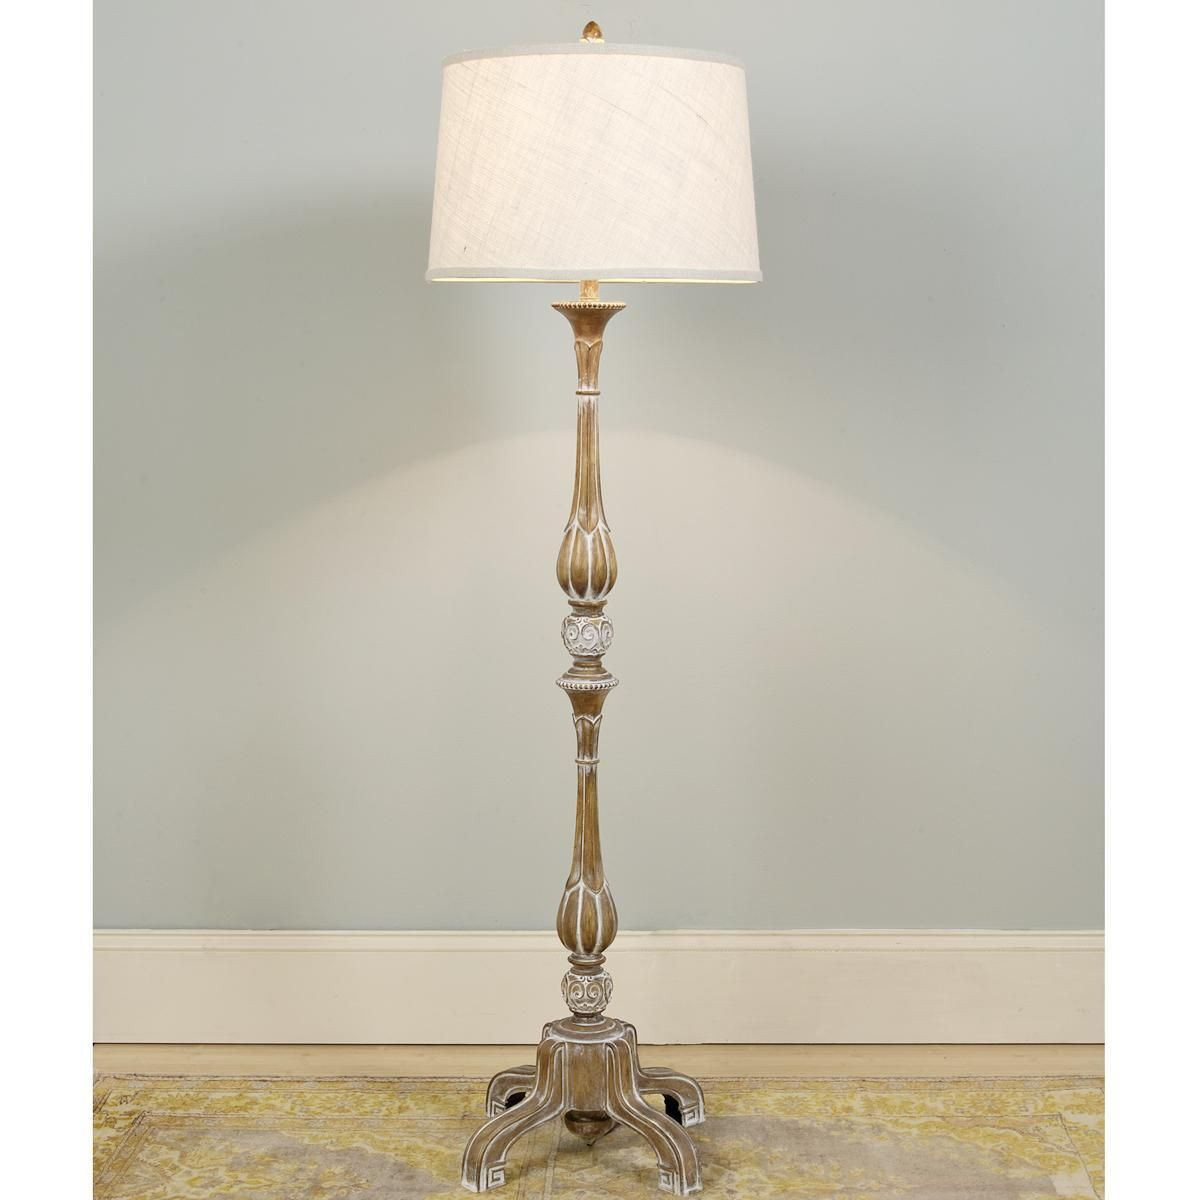 French Provincial Pickled Wood Floor Lamp - Shades of Light | 无锡 ...